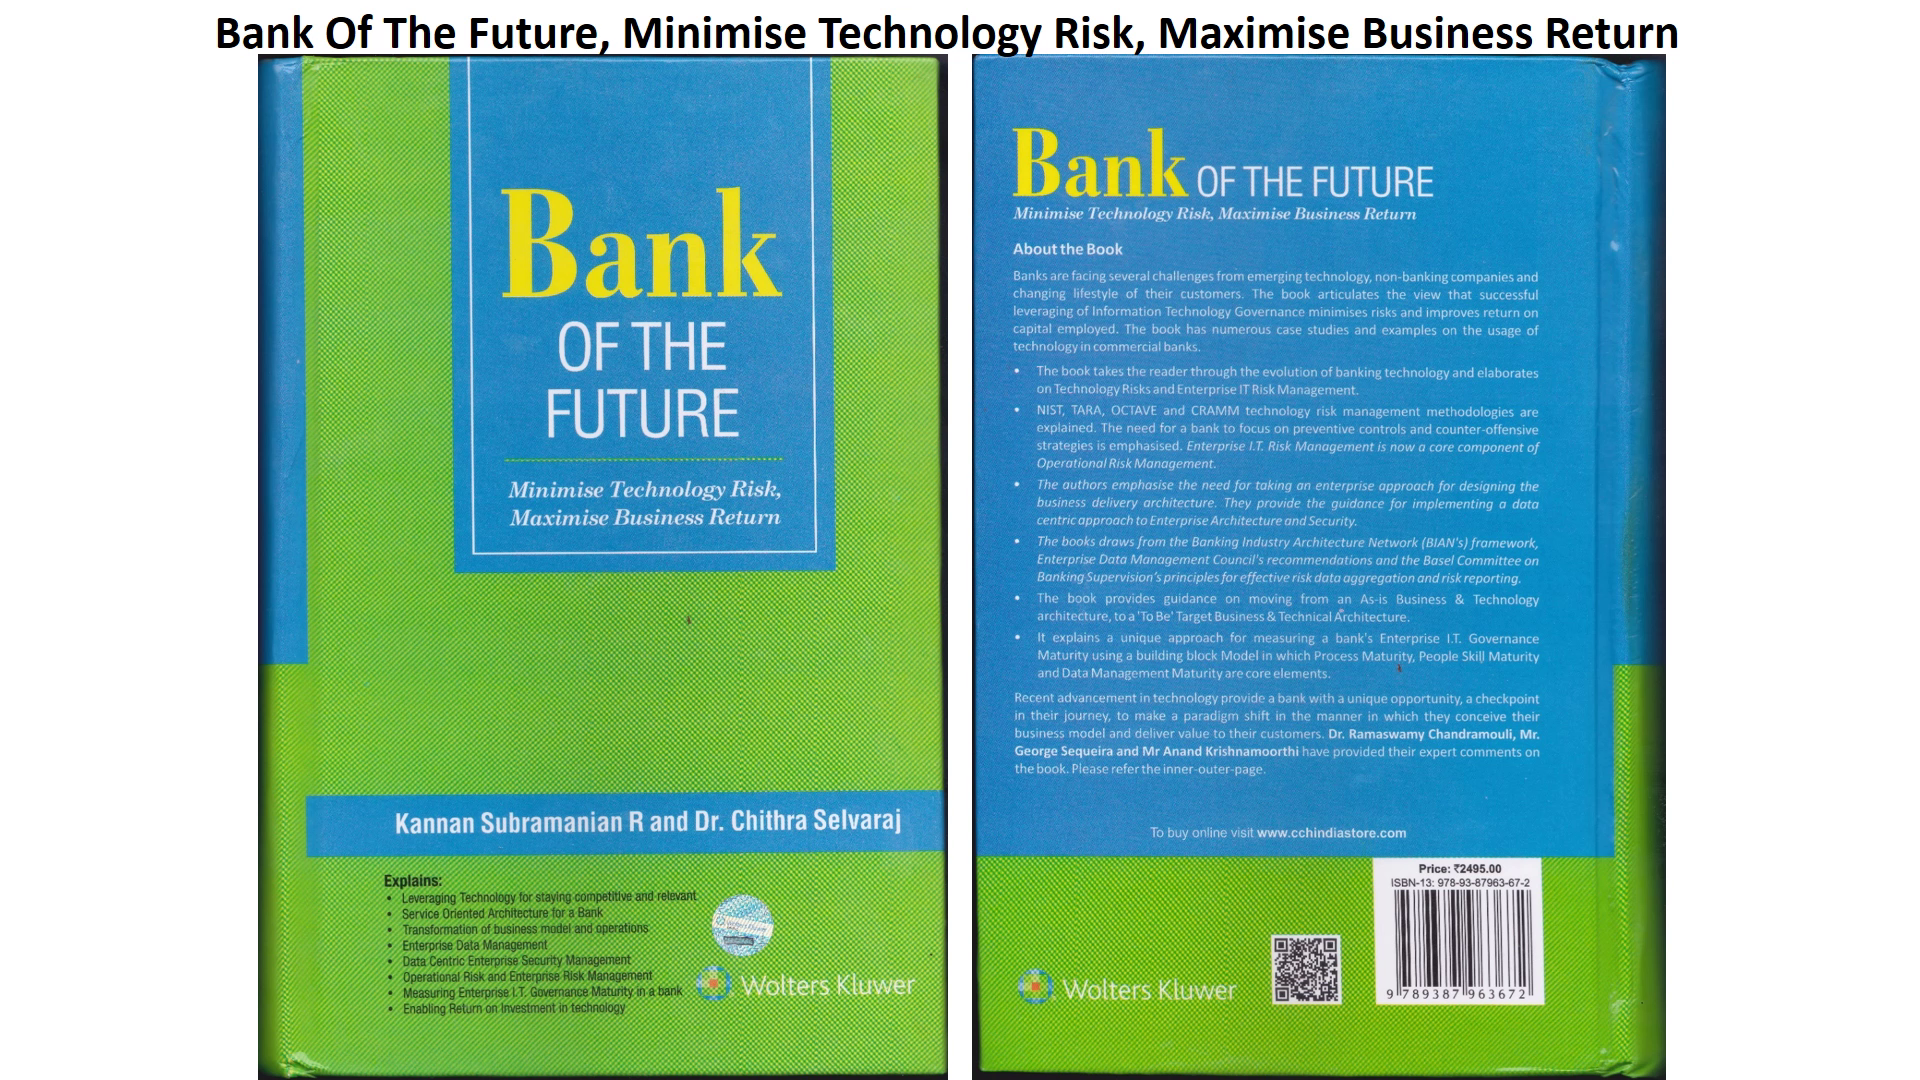 Bank of the Future Min Tech Risk, Max Biz Return